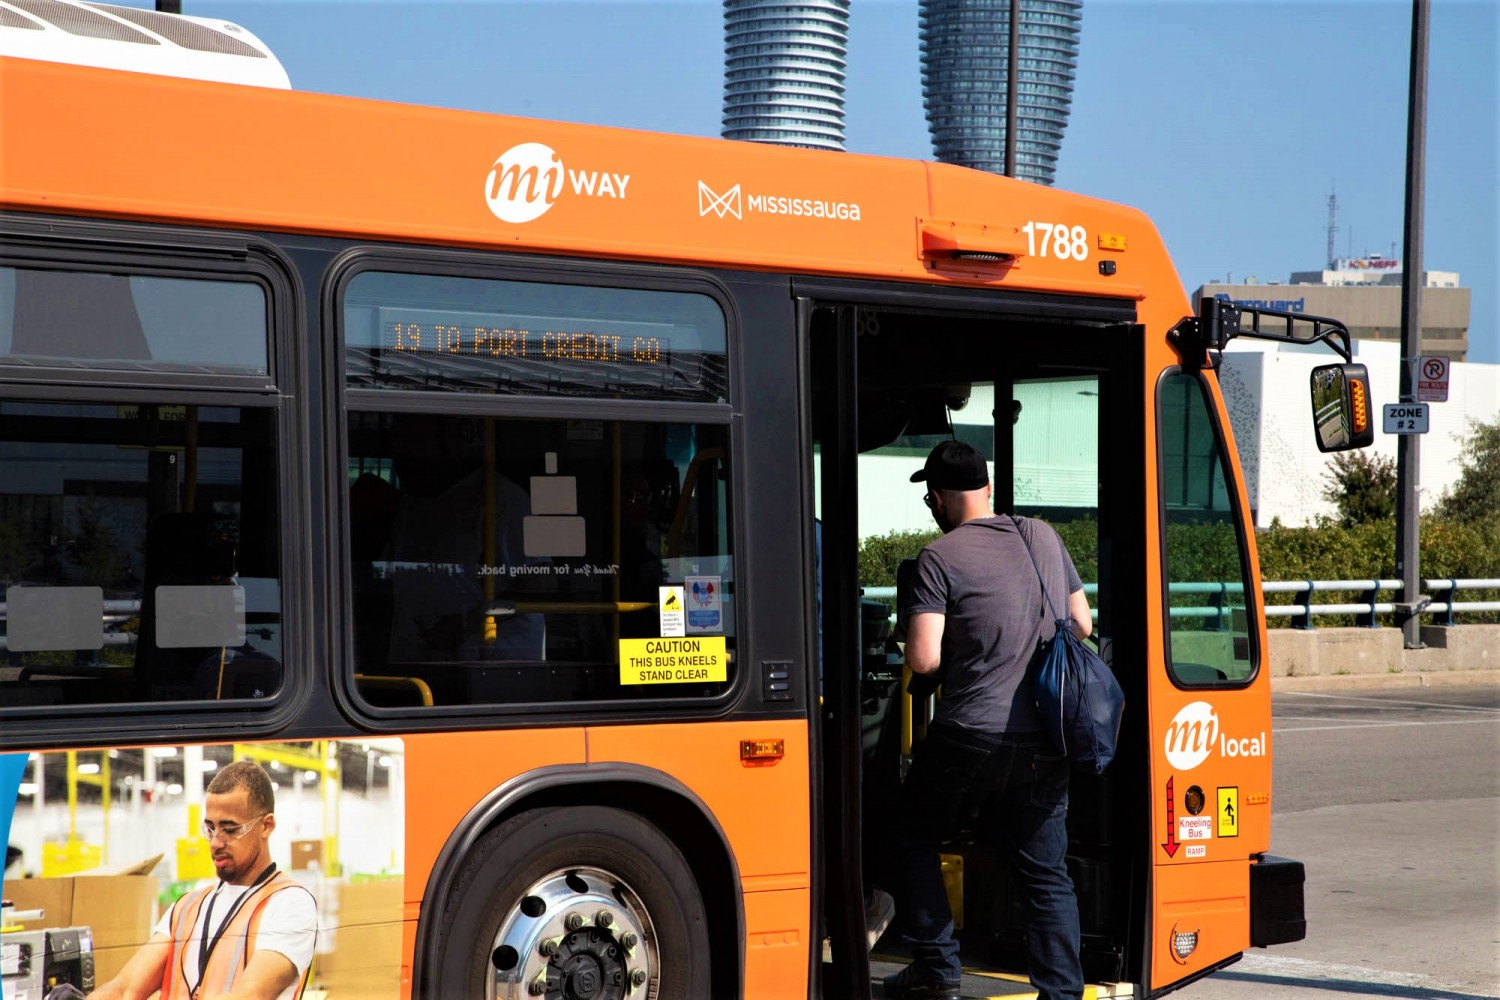 Mississauga moves to re-introduce fares on buses, but riders might stay away until they feel safe